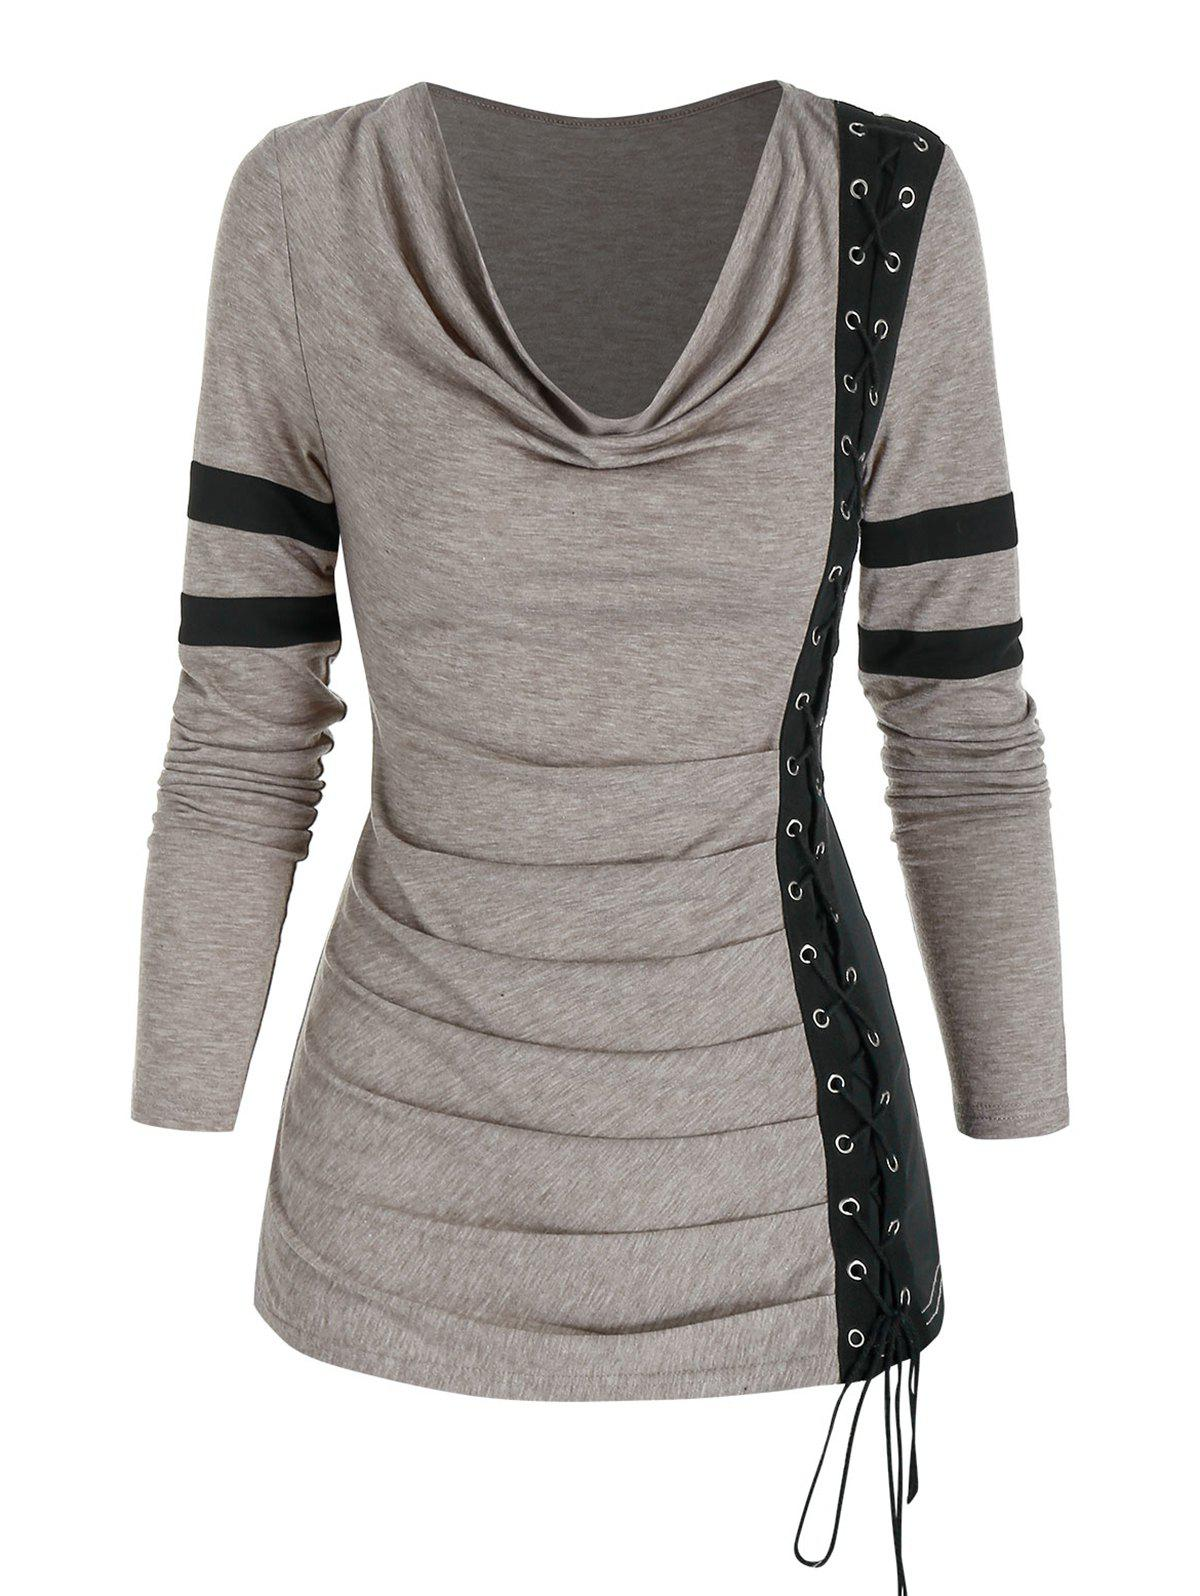 Cowl Neck Ruched Lace Up Eyelet Tee - LIGHT COFFEE 3XL